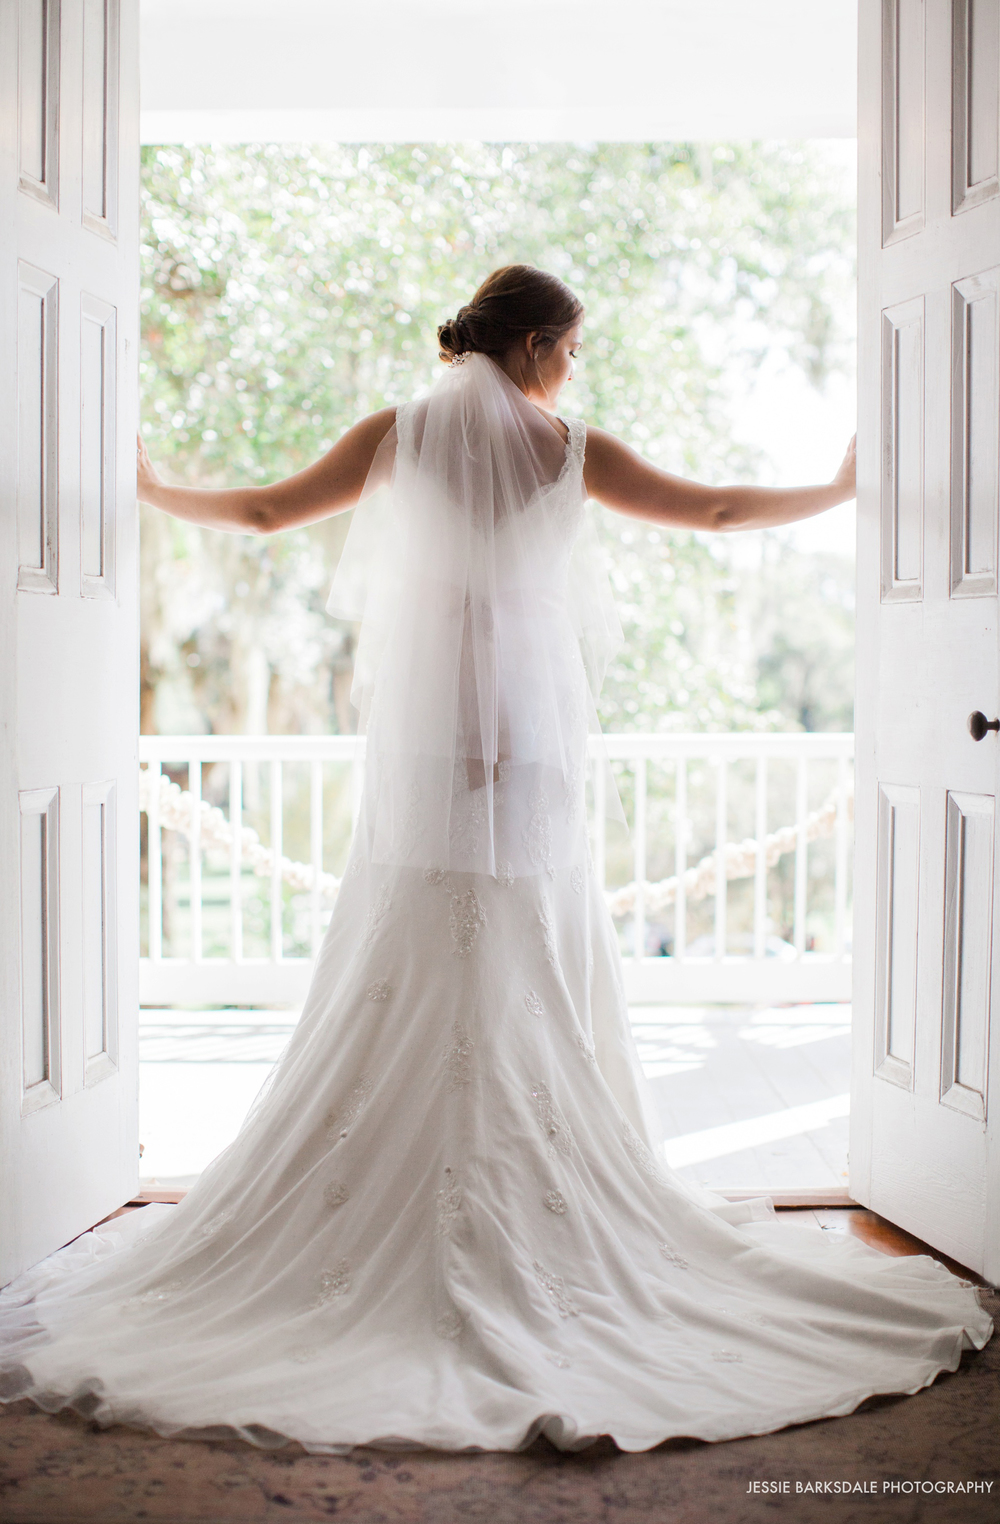 Jessie Barksdale_The Elms Coosada_Southern Plantation Home_Fall Wedding Inspiration_Dramatic Bridal Portrait Doorway_Birmingham Montgomery Alabama Fine Art Film Romantic Wedding Photographer